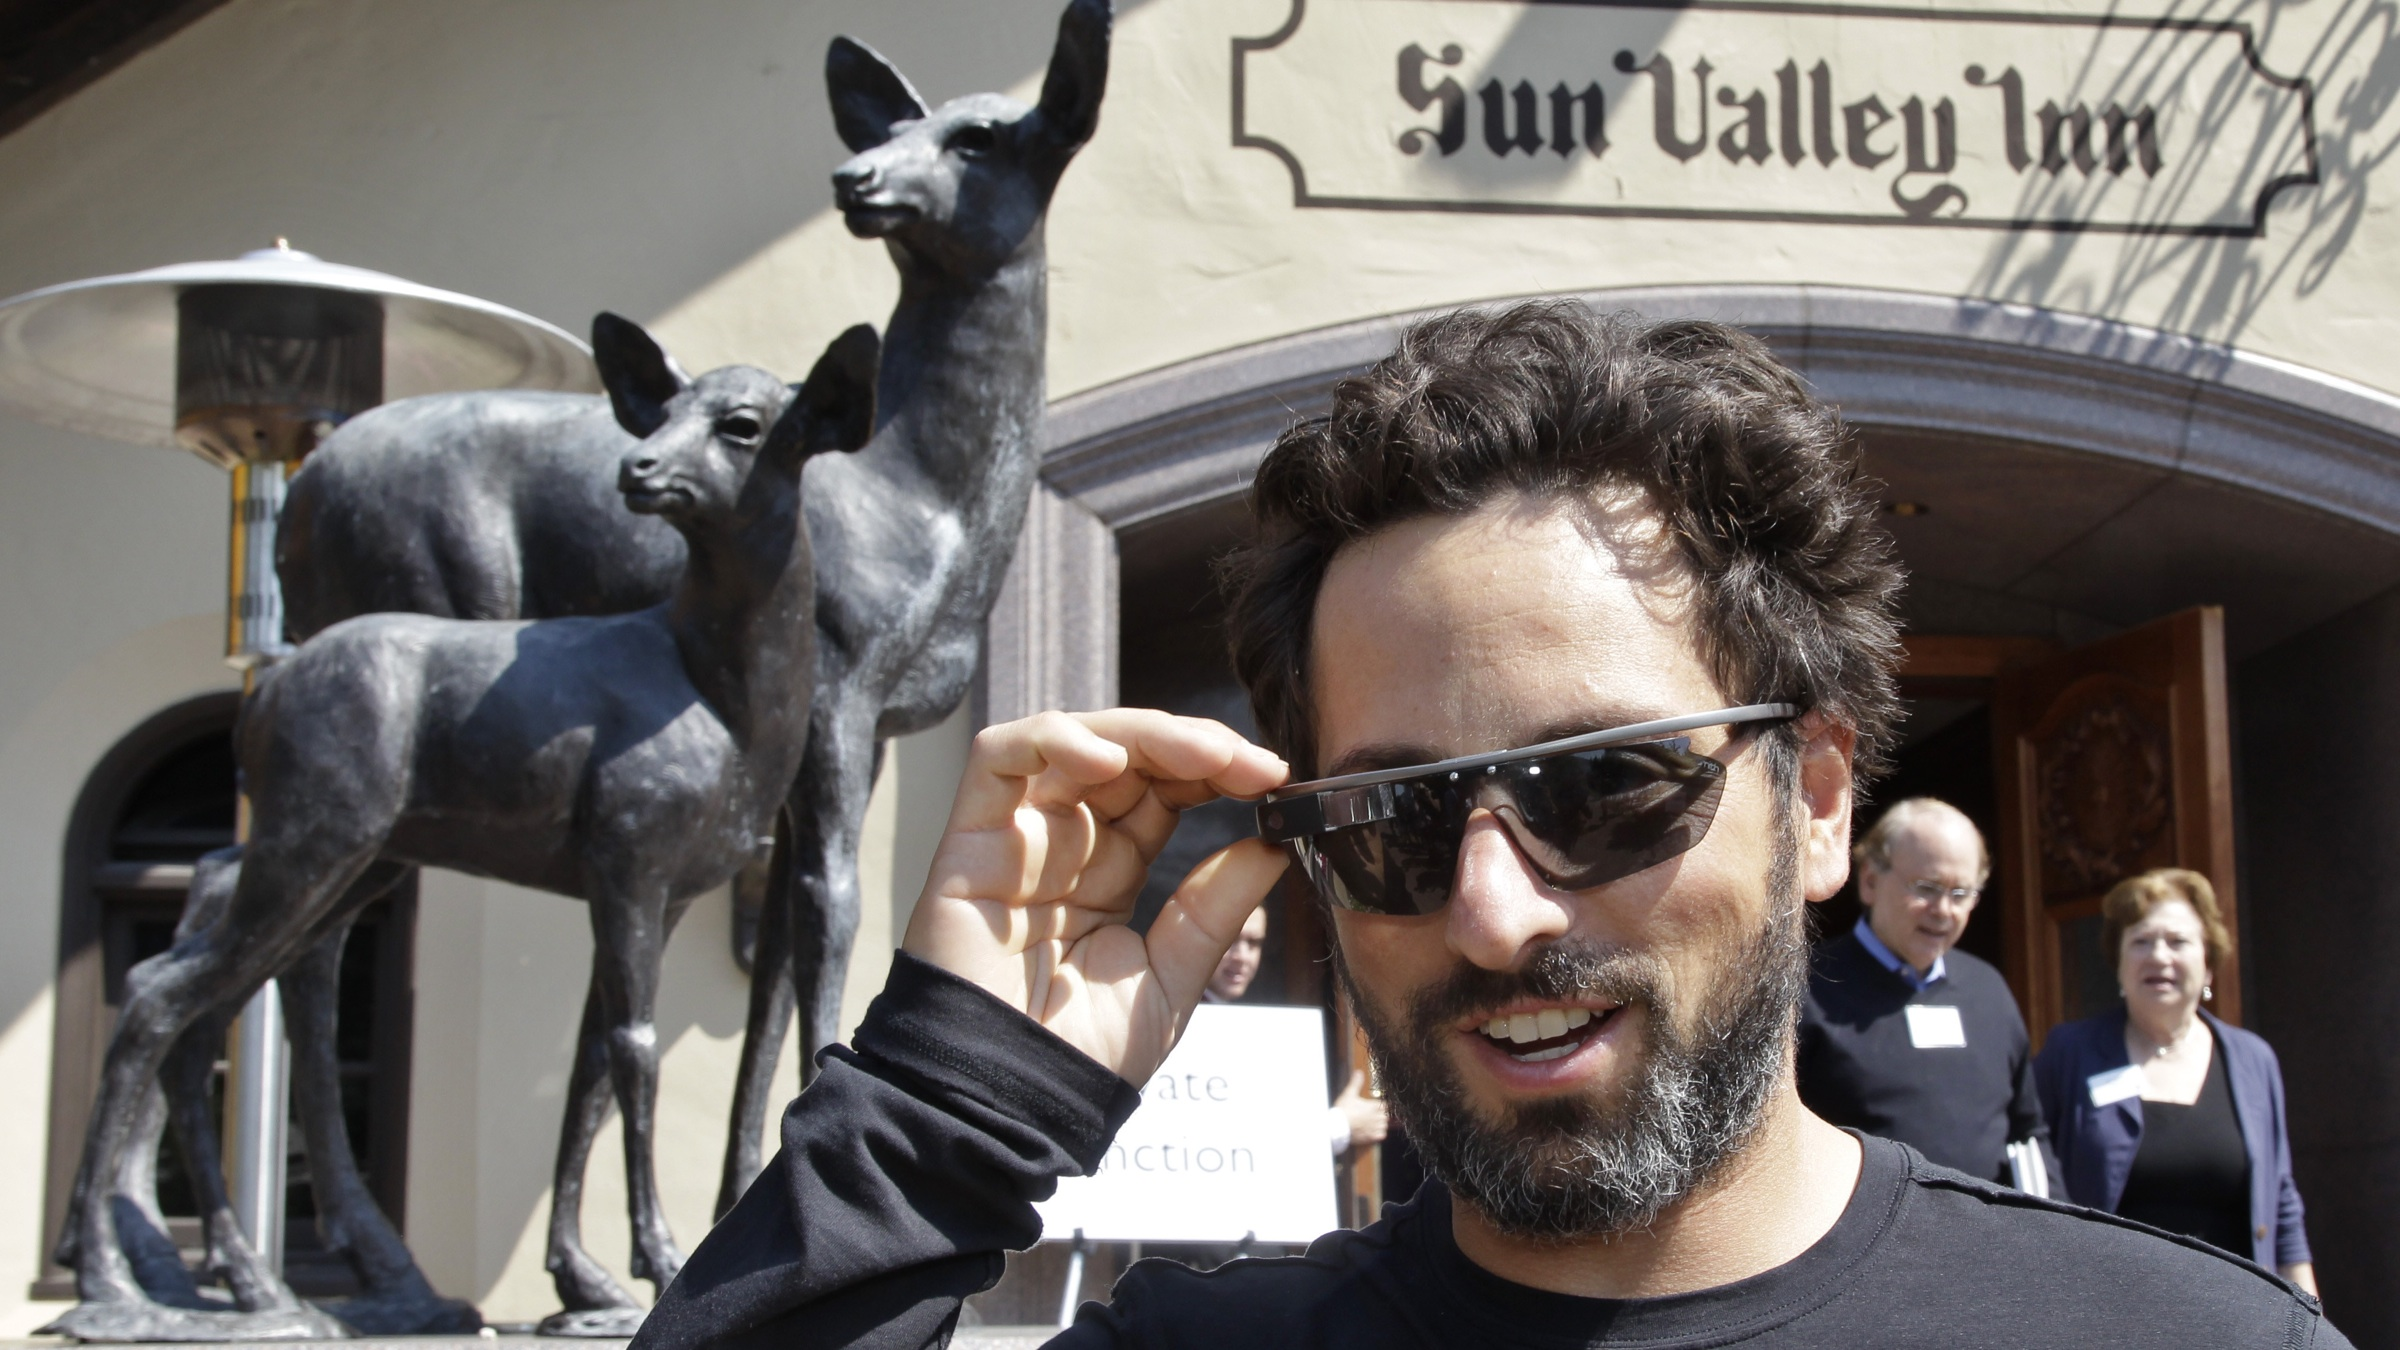 """Google co-founder Sergey Brin demonstrates his """"Google Glasses"""" at the Allen & Company Sun Valley Conference in Sun Valley, Idaho, Thursday, July 12, 2012. (AP Photo/Paul Sakuma)"""